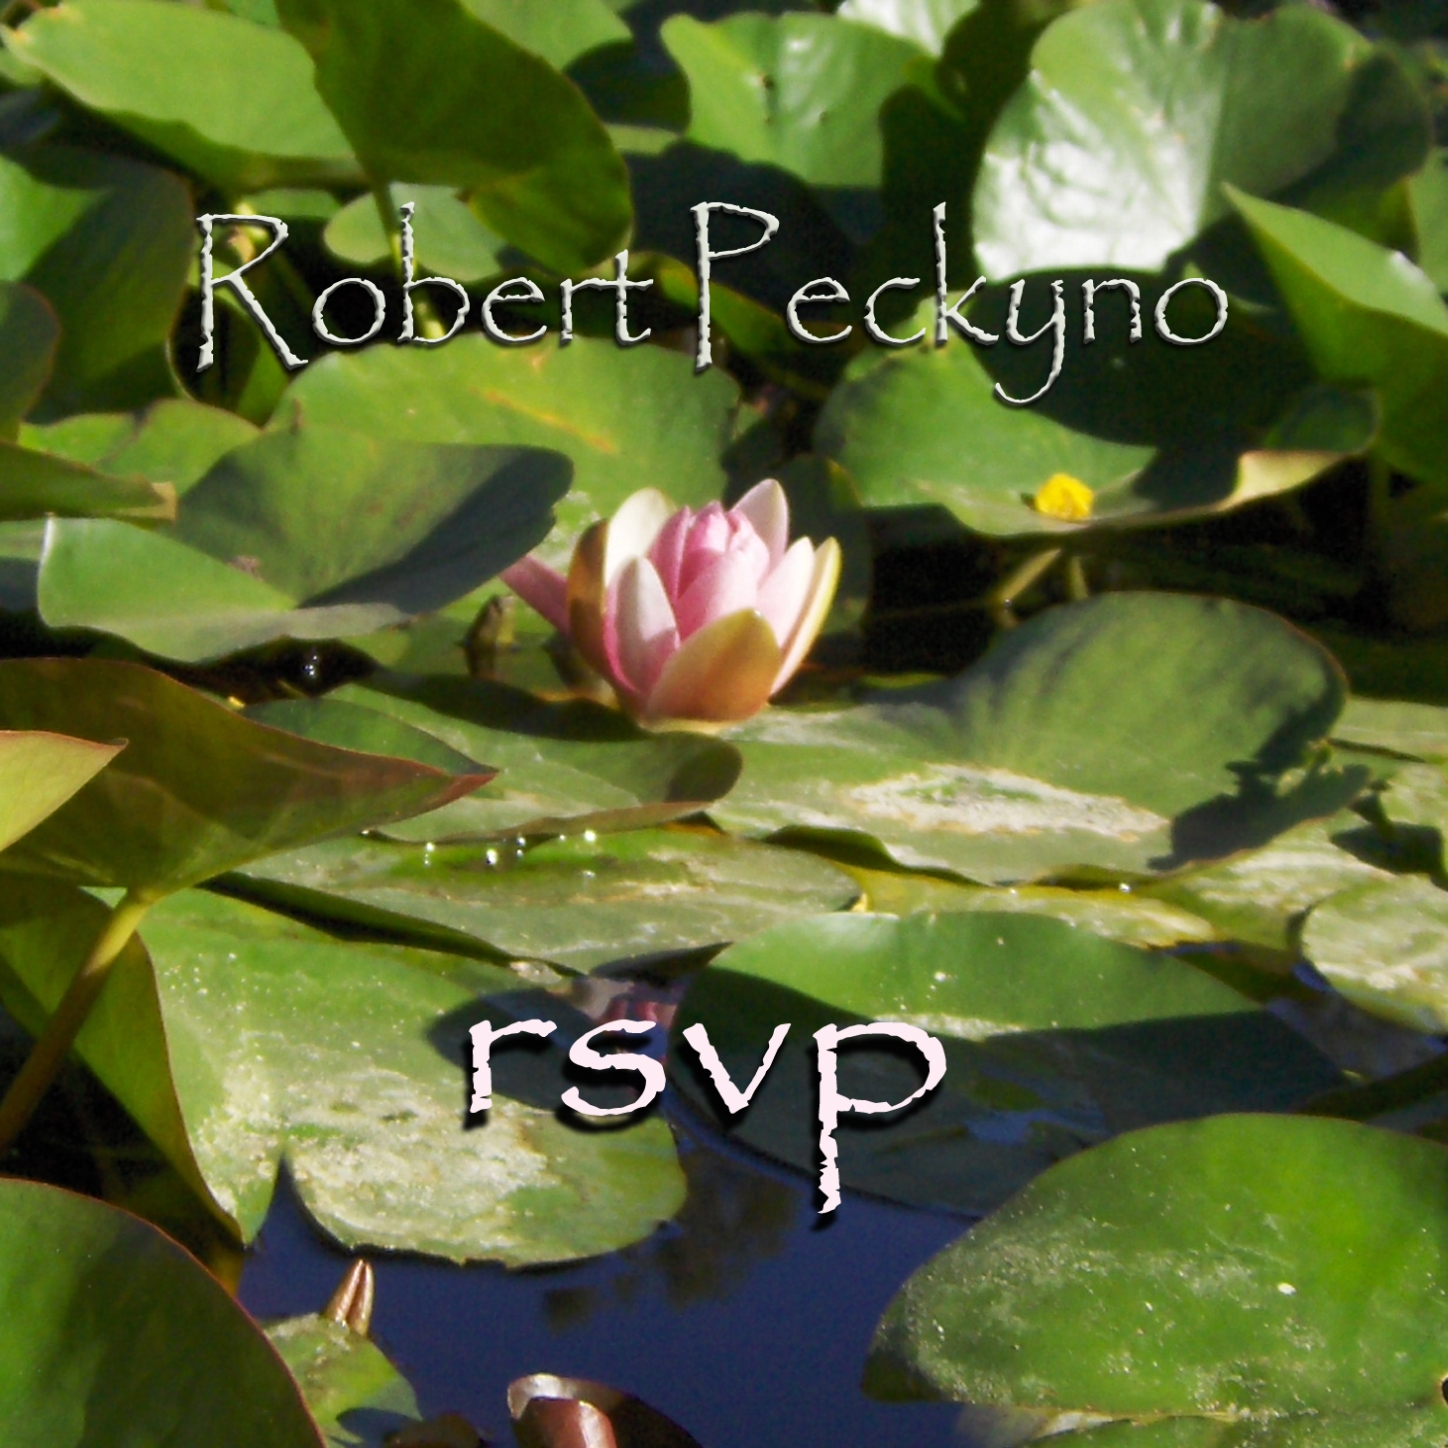 Rsvp full album mp3 download related products mightylinksfo